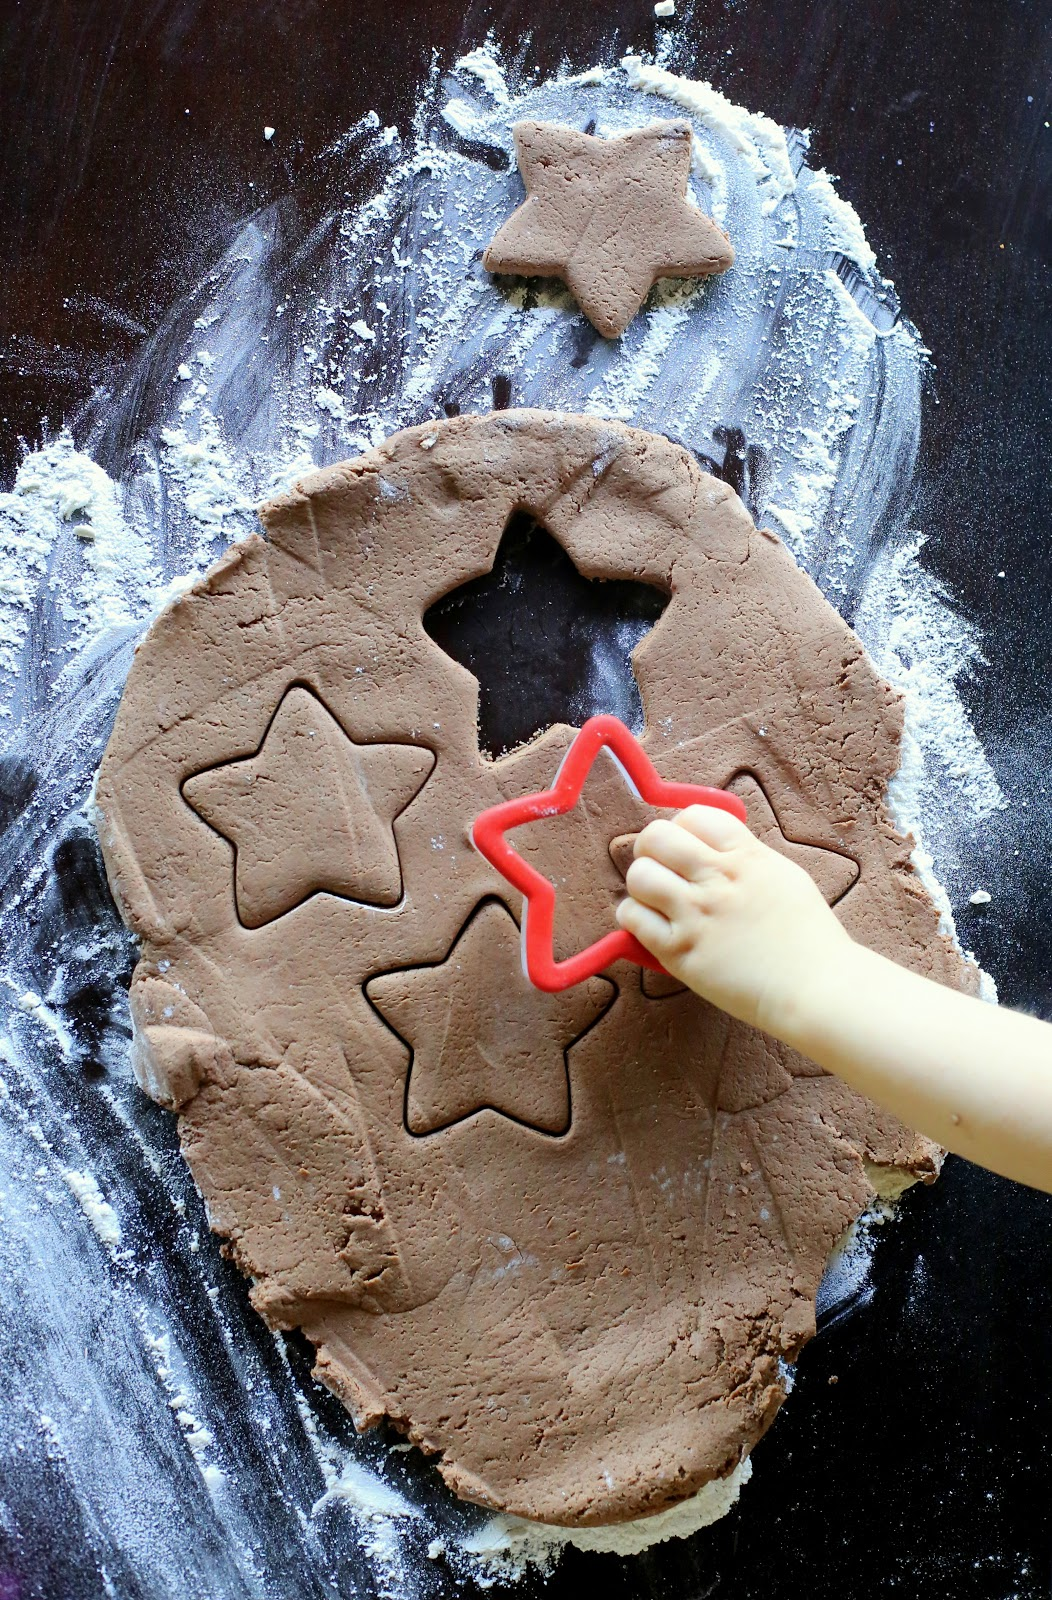 A new recipe for Chocolate ornament dough.  Make some hot cocoa and settle in for some delicious smelling homemade ornament creating!  From Fun at Home with Kids